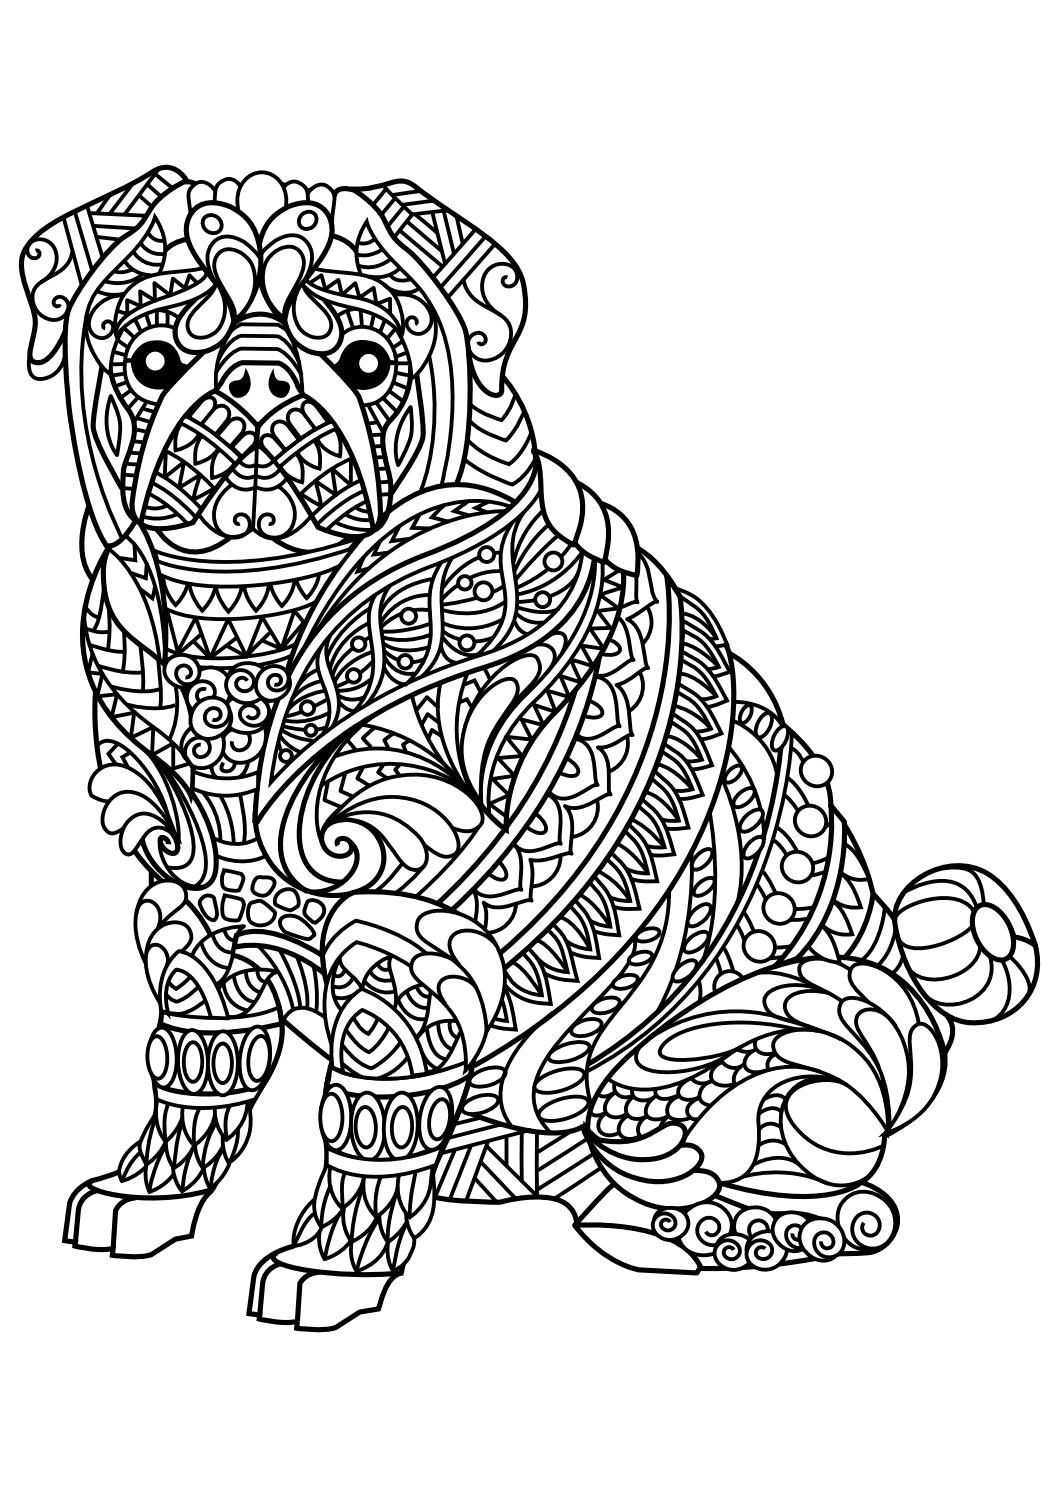 Animal Coloring Pages Pdf   Coloring - Animals   Dog Coloring Page - Free Printable Animal Coloring Pages